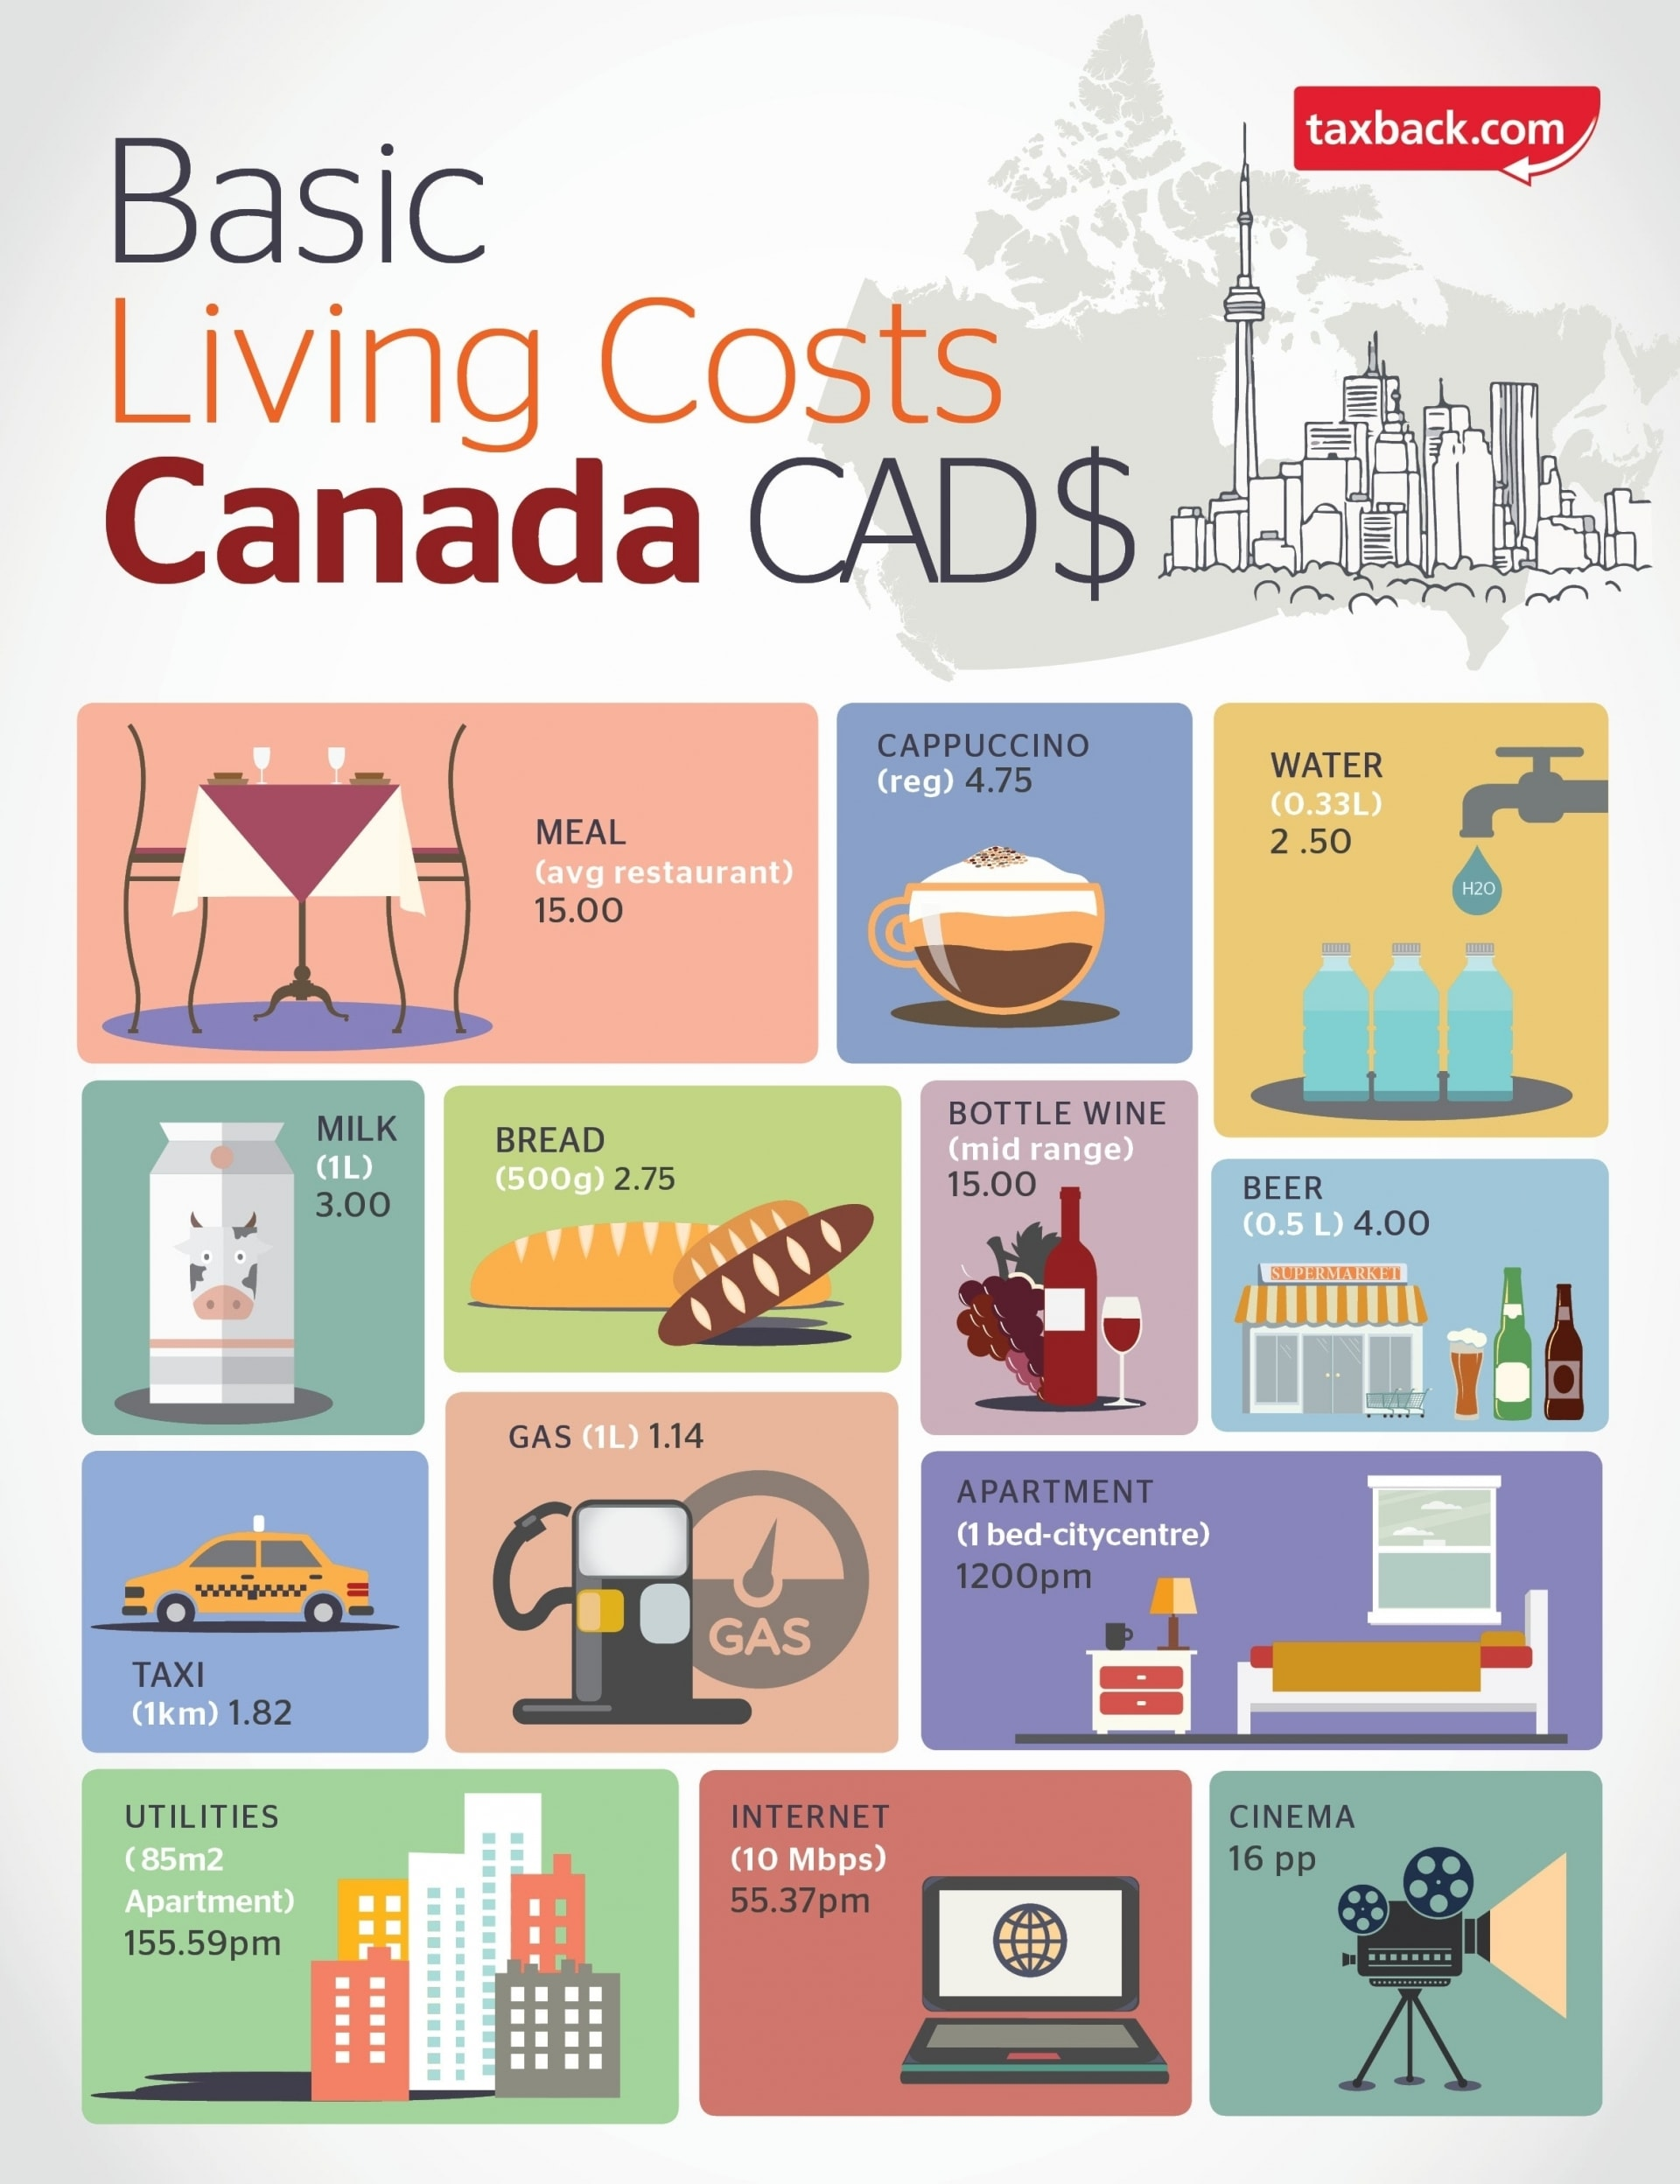 basic living costs in Canada